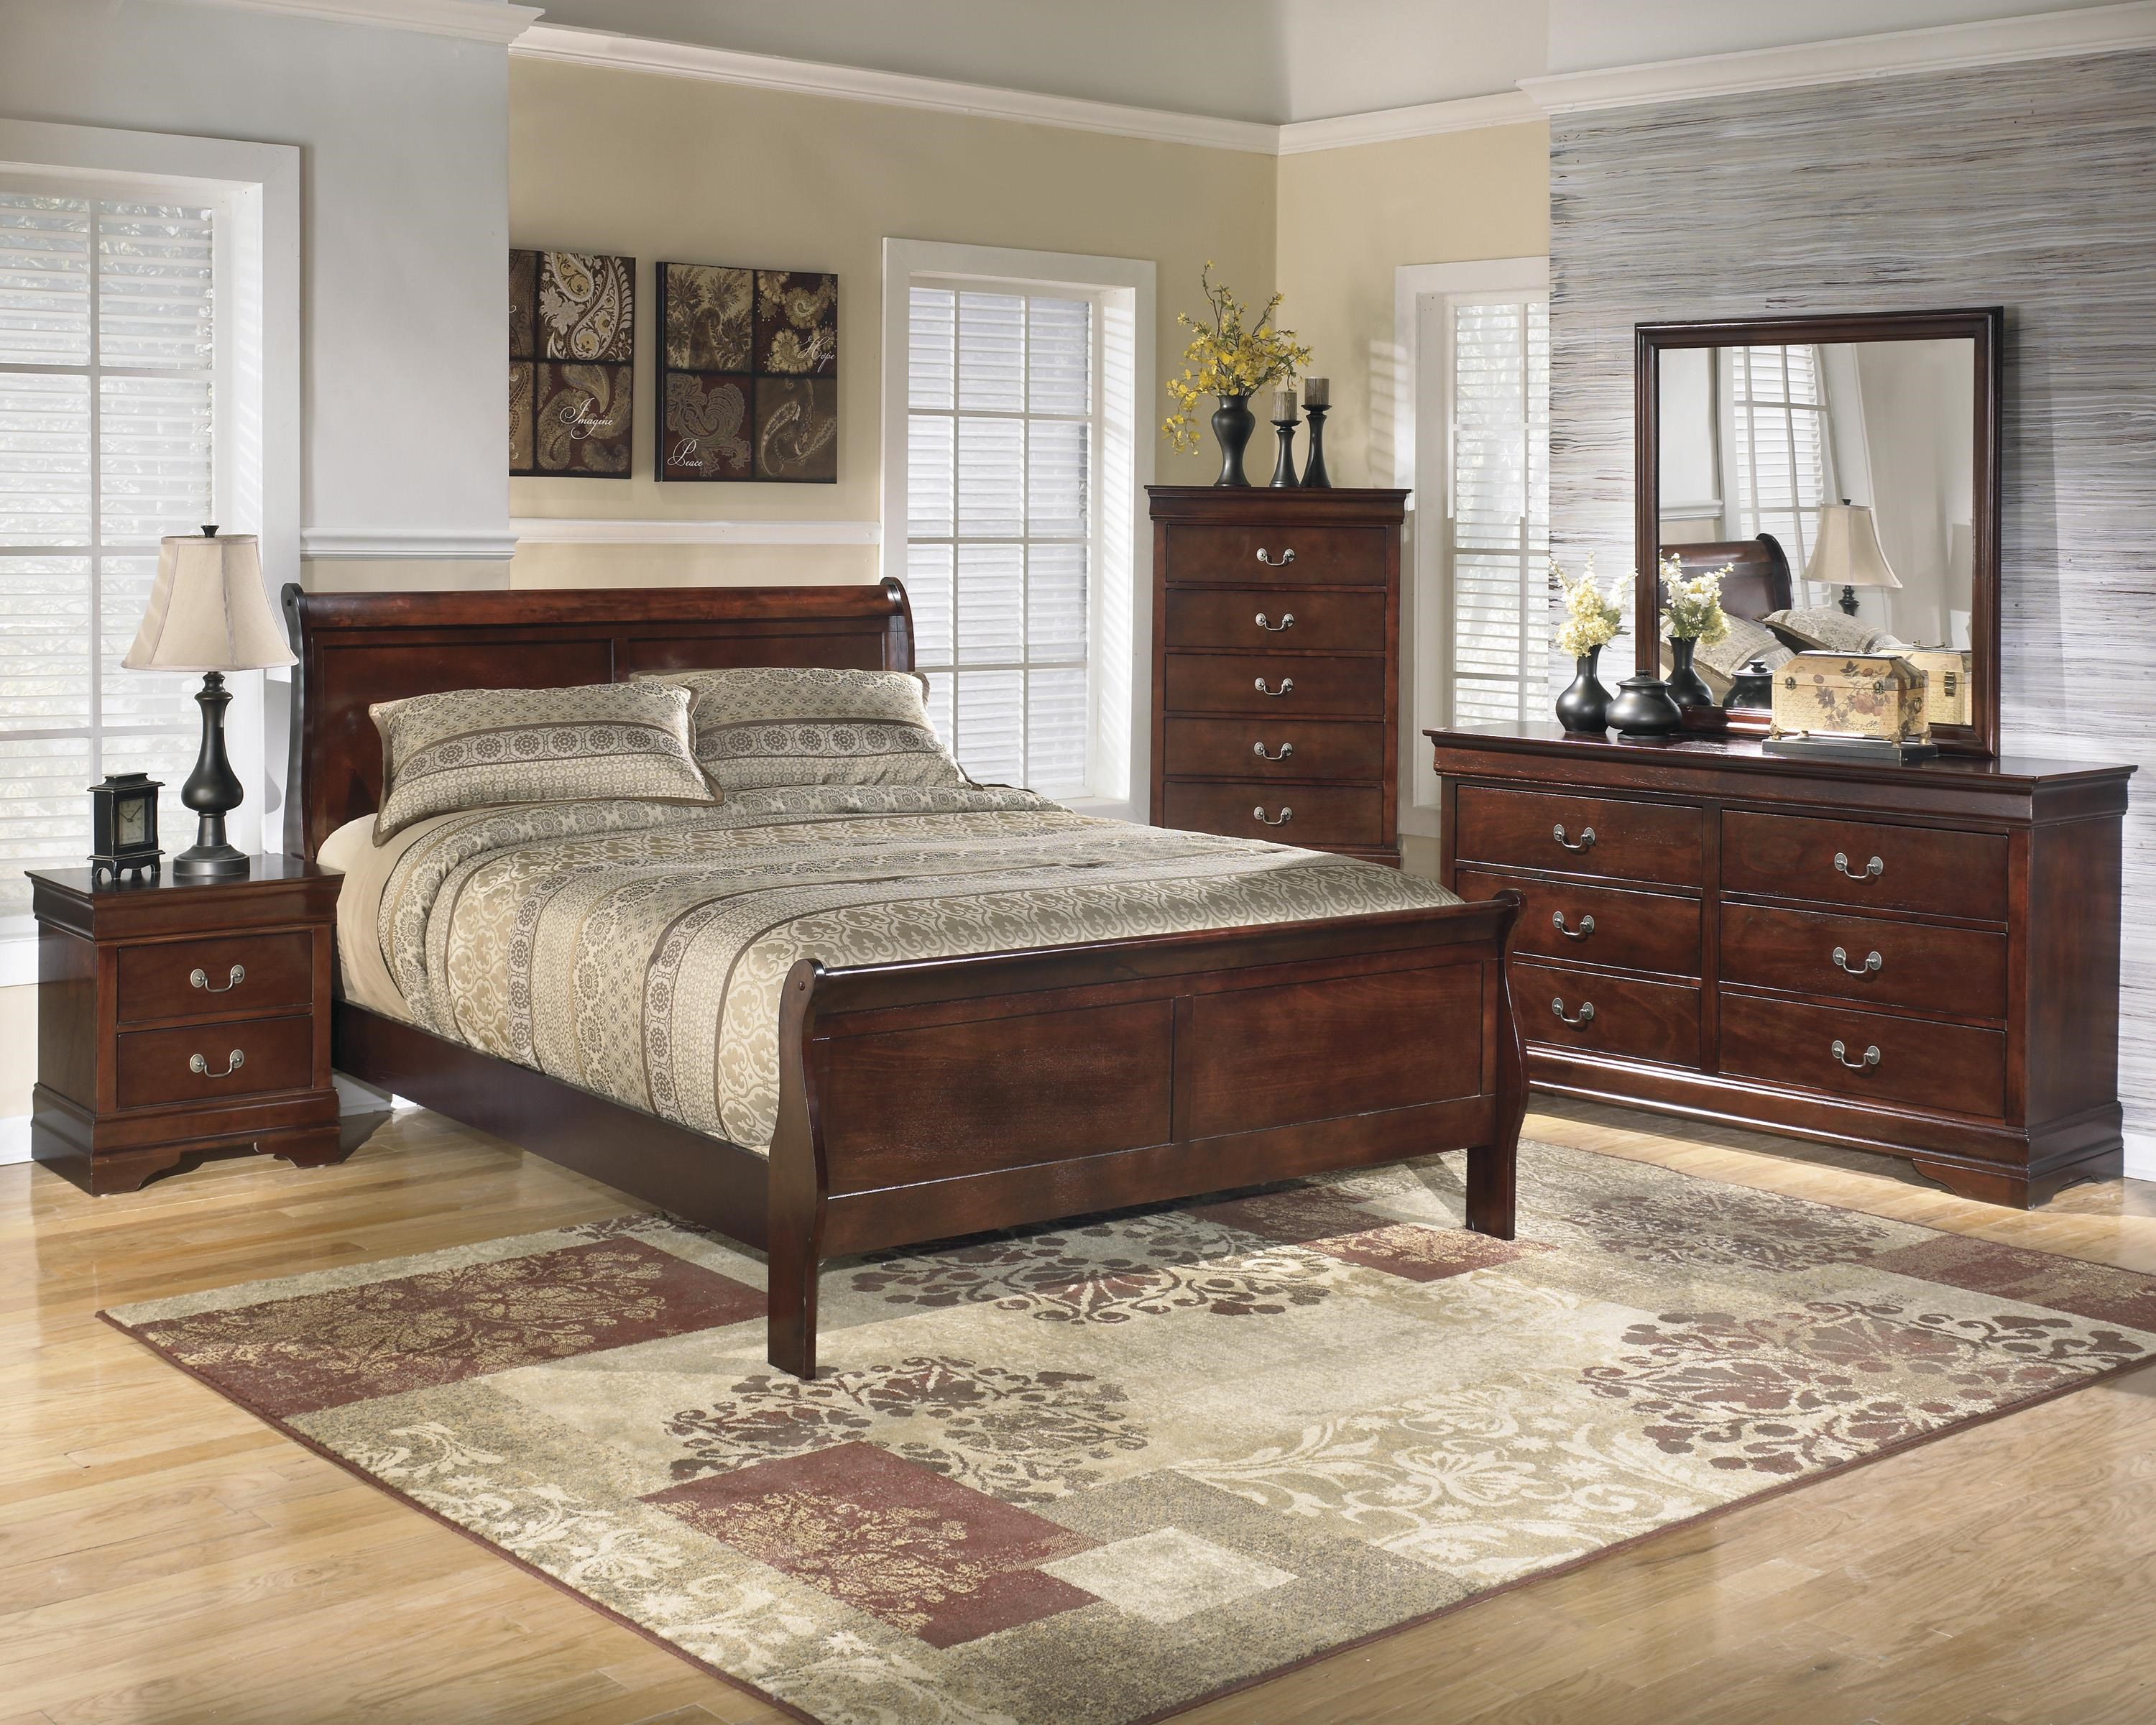 King Sleigh Bed Package